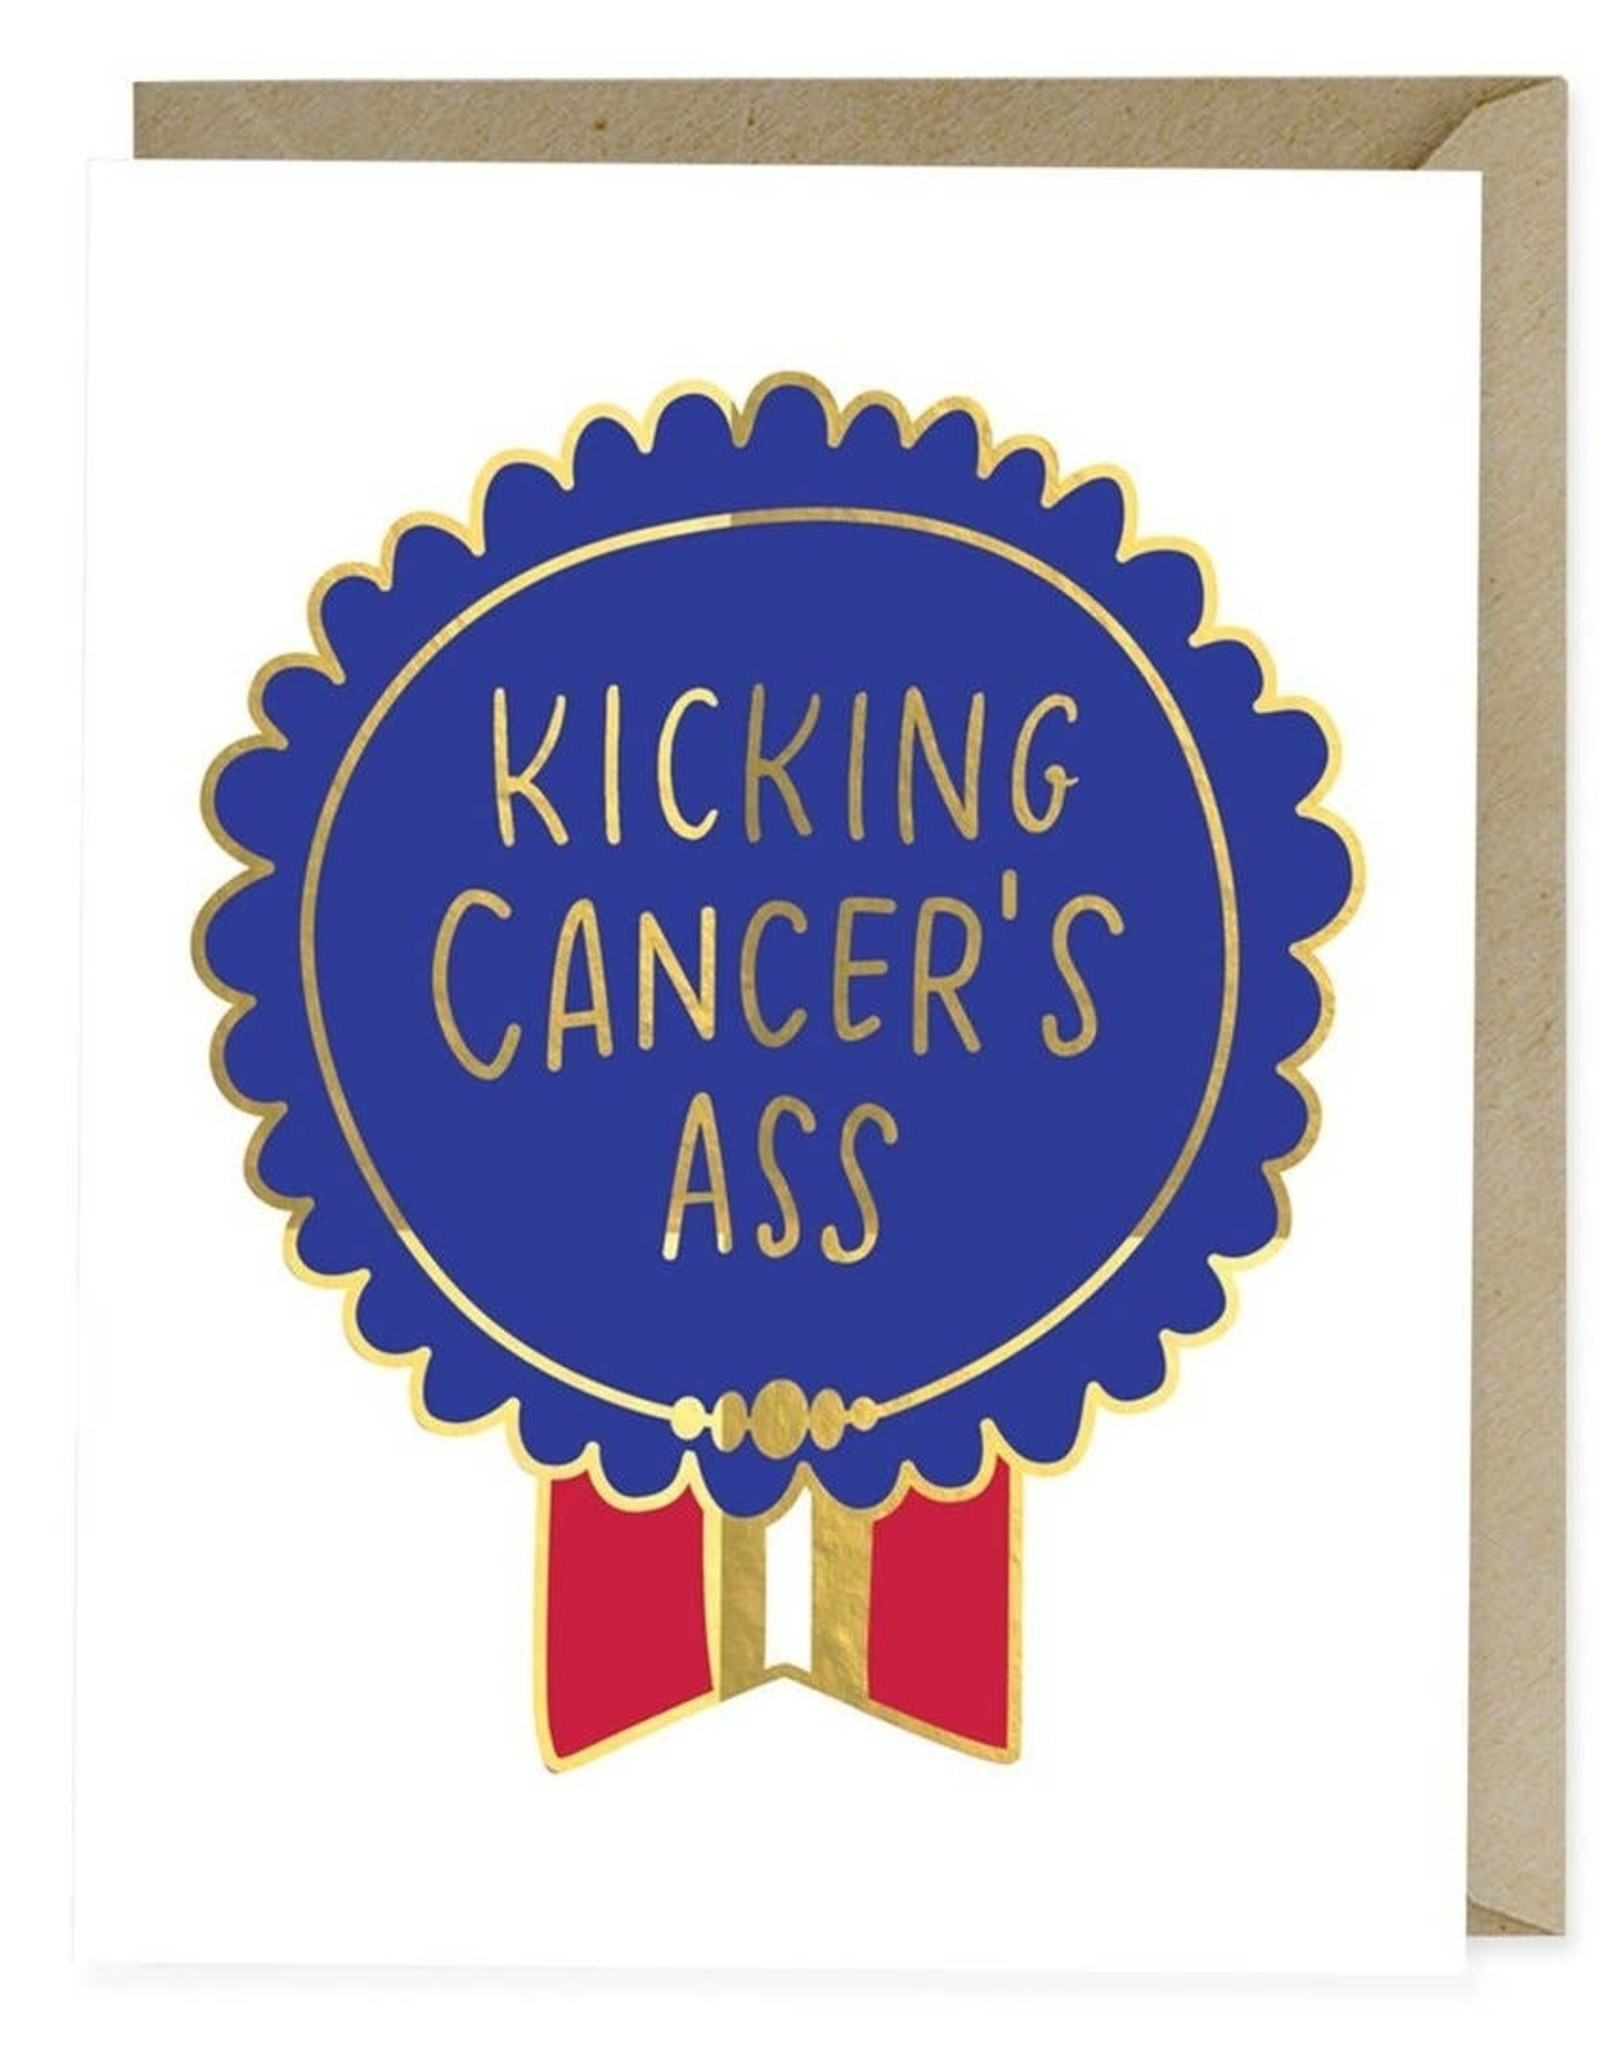 EMILY MCDOWELL KICKING CANCERS ASS CARD